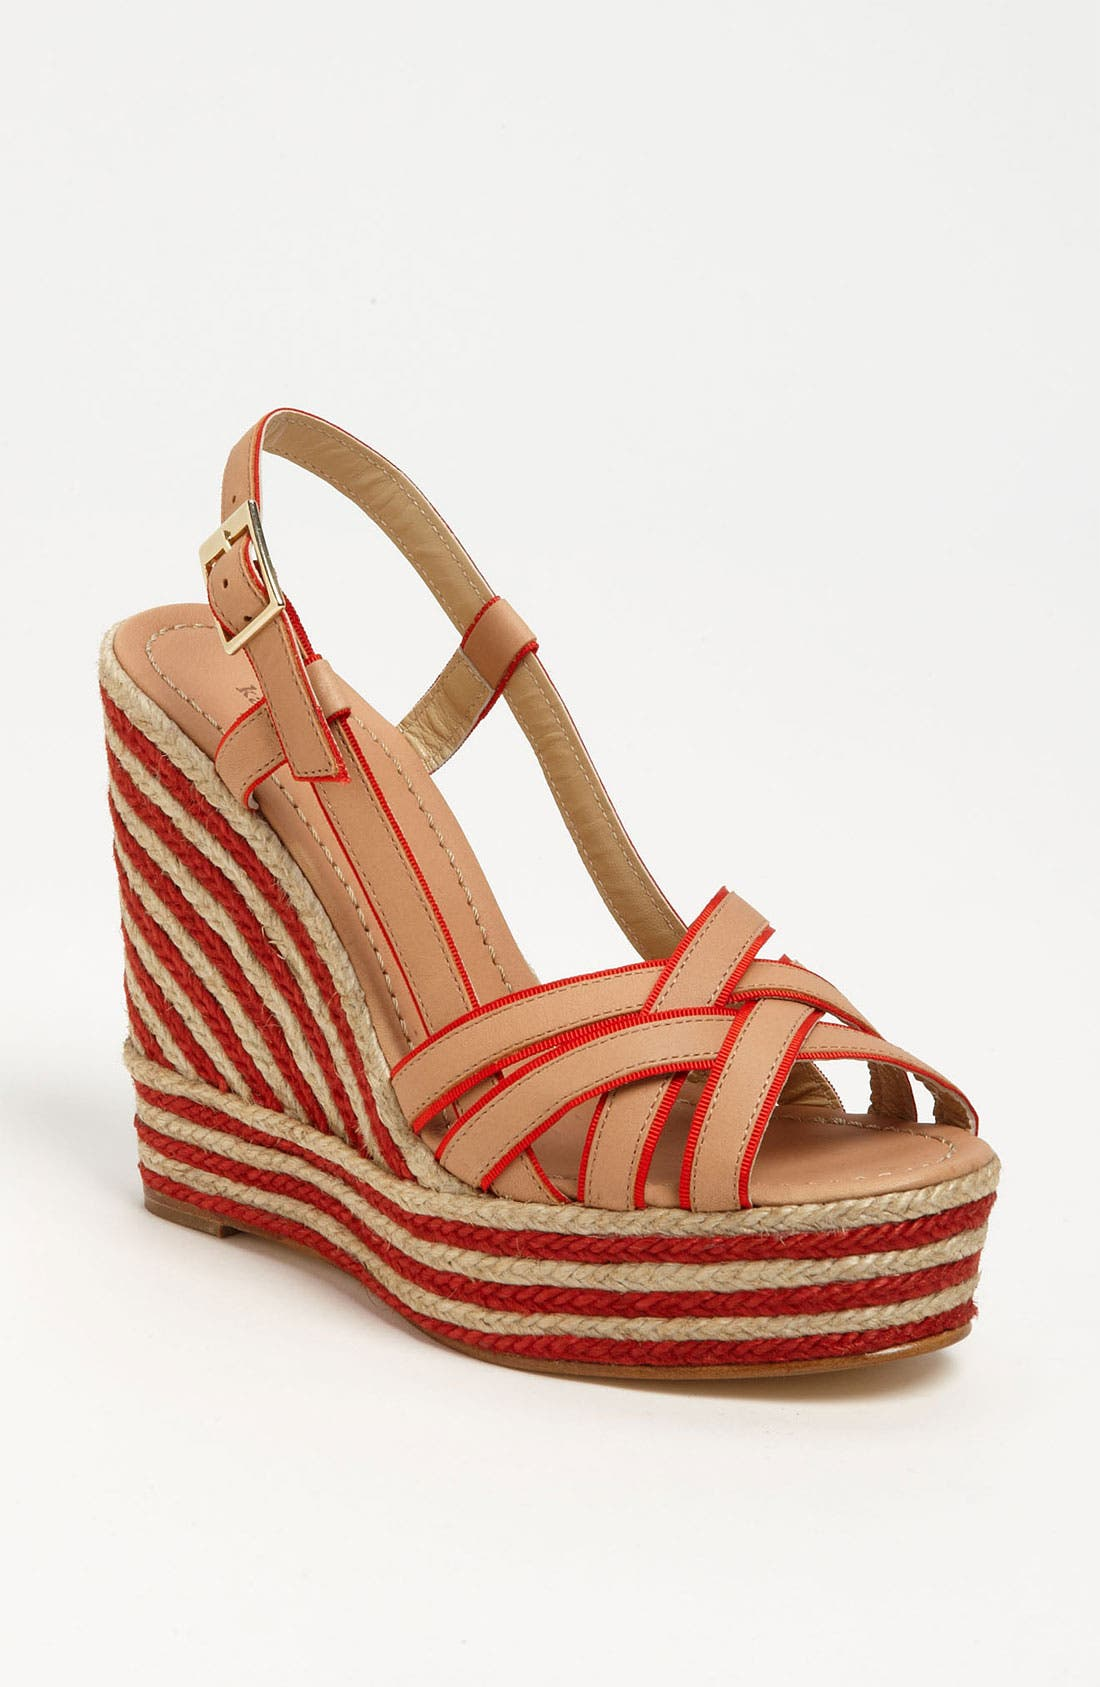 Main Image - kate spade new york 'ladan' wedge sandal